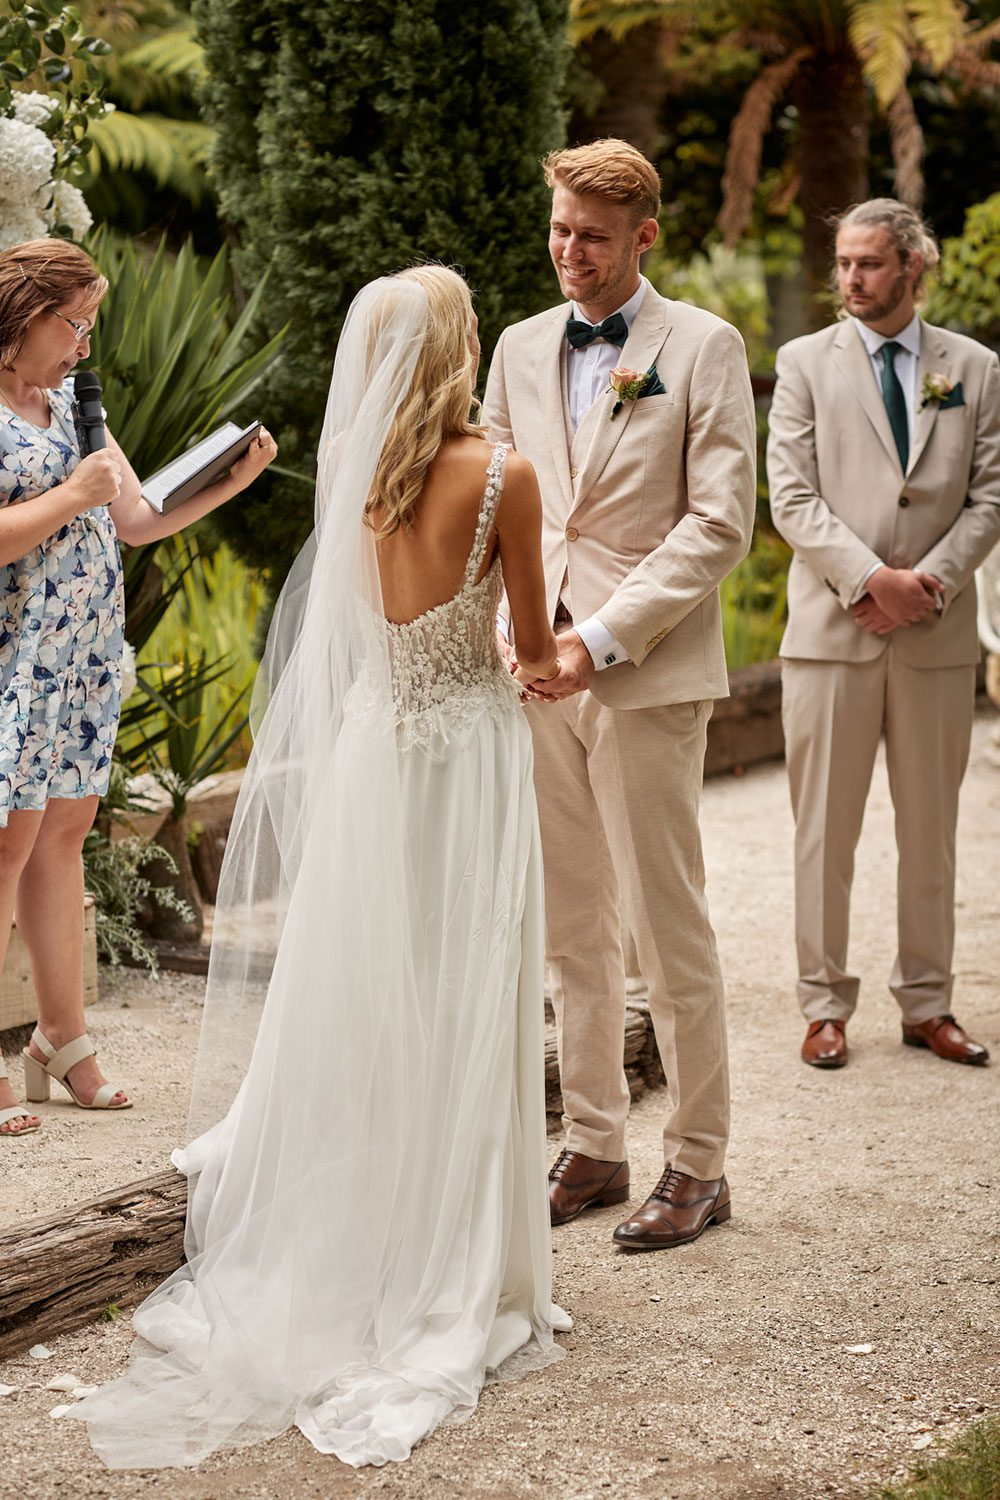 Bride wearing bespoke gown made of silk chiffon with delicate flower lace bodice by Vinka bridal designer Auckland - at alter with groom